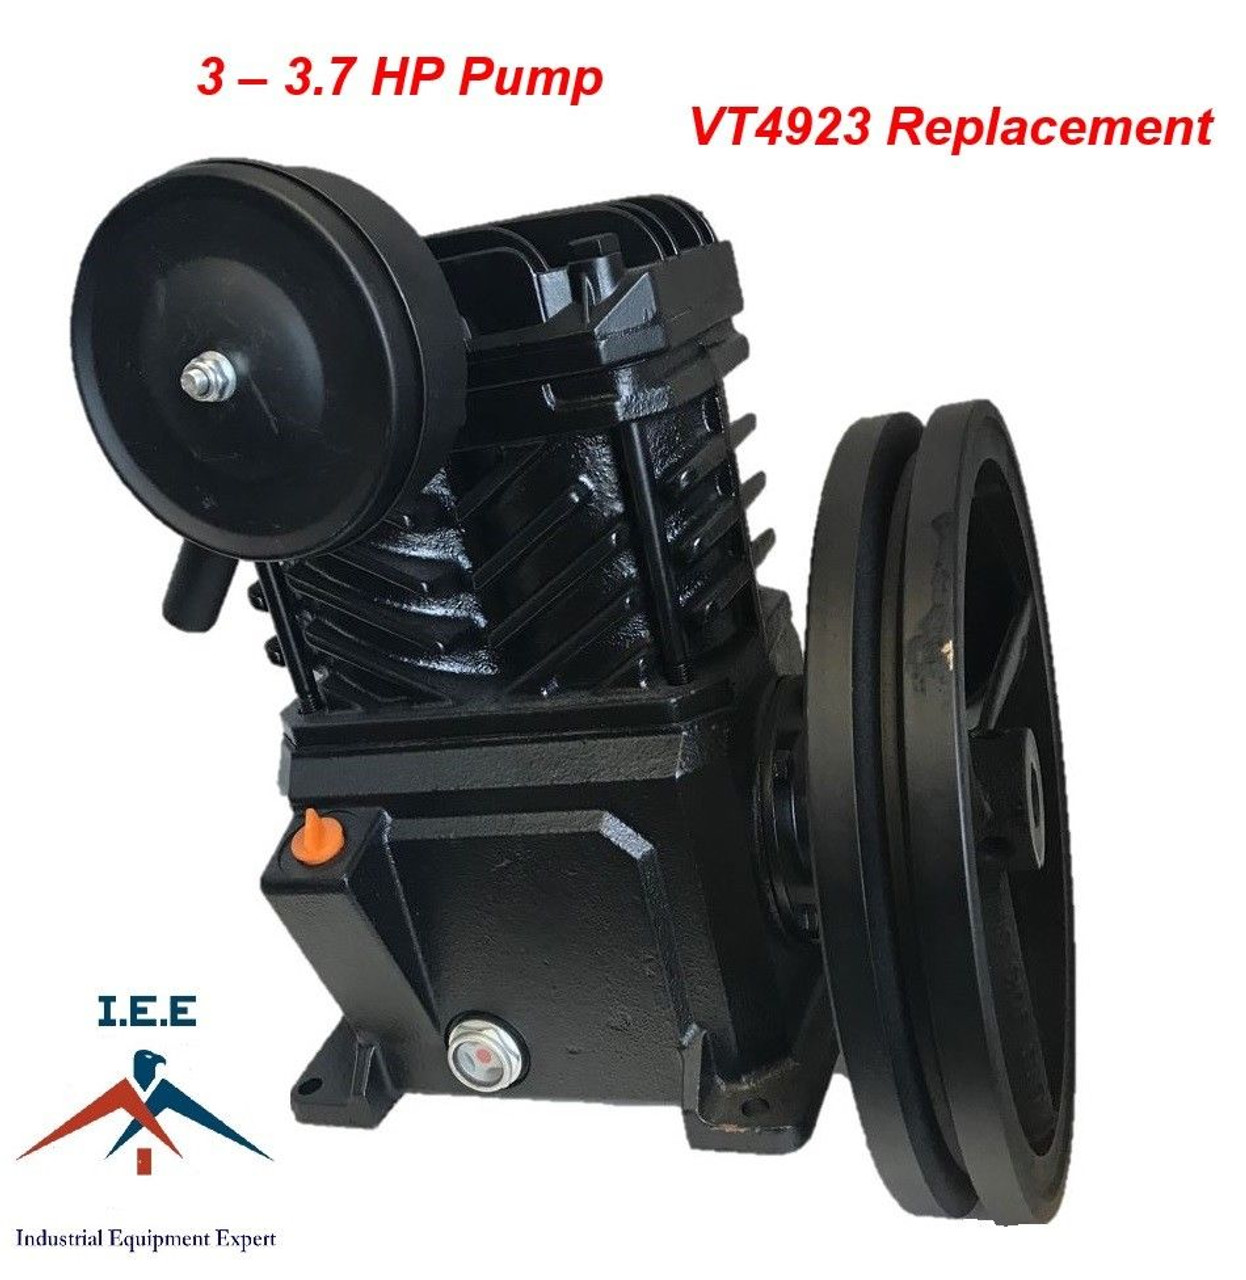 Replacement Air Compressor Pump >> Campbell Hausfeld Replacement Vt4923 3 Hp Cast Iron Air Compressor